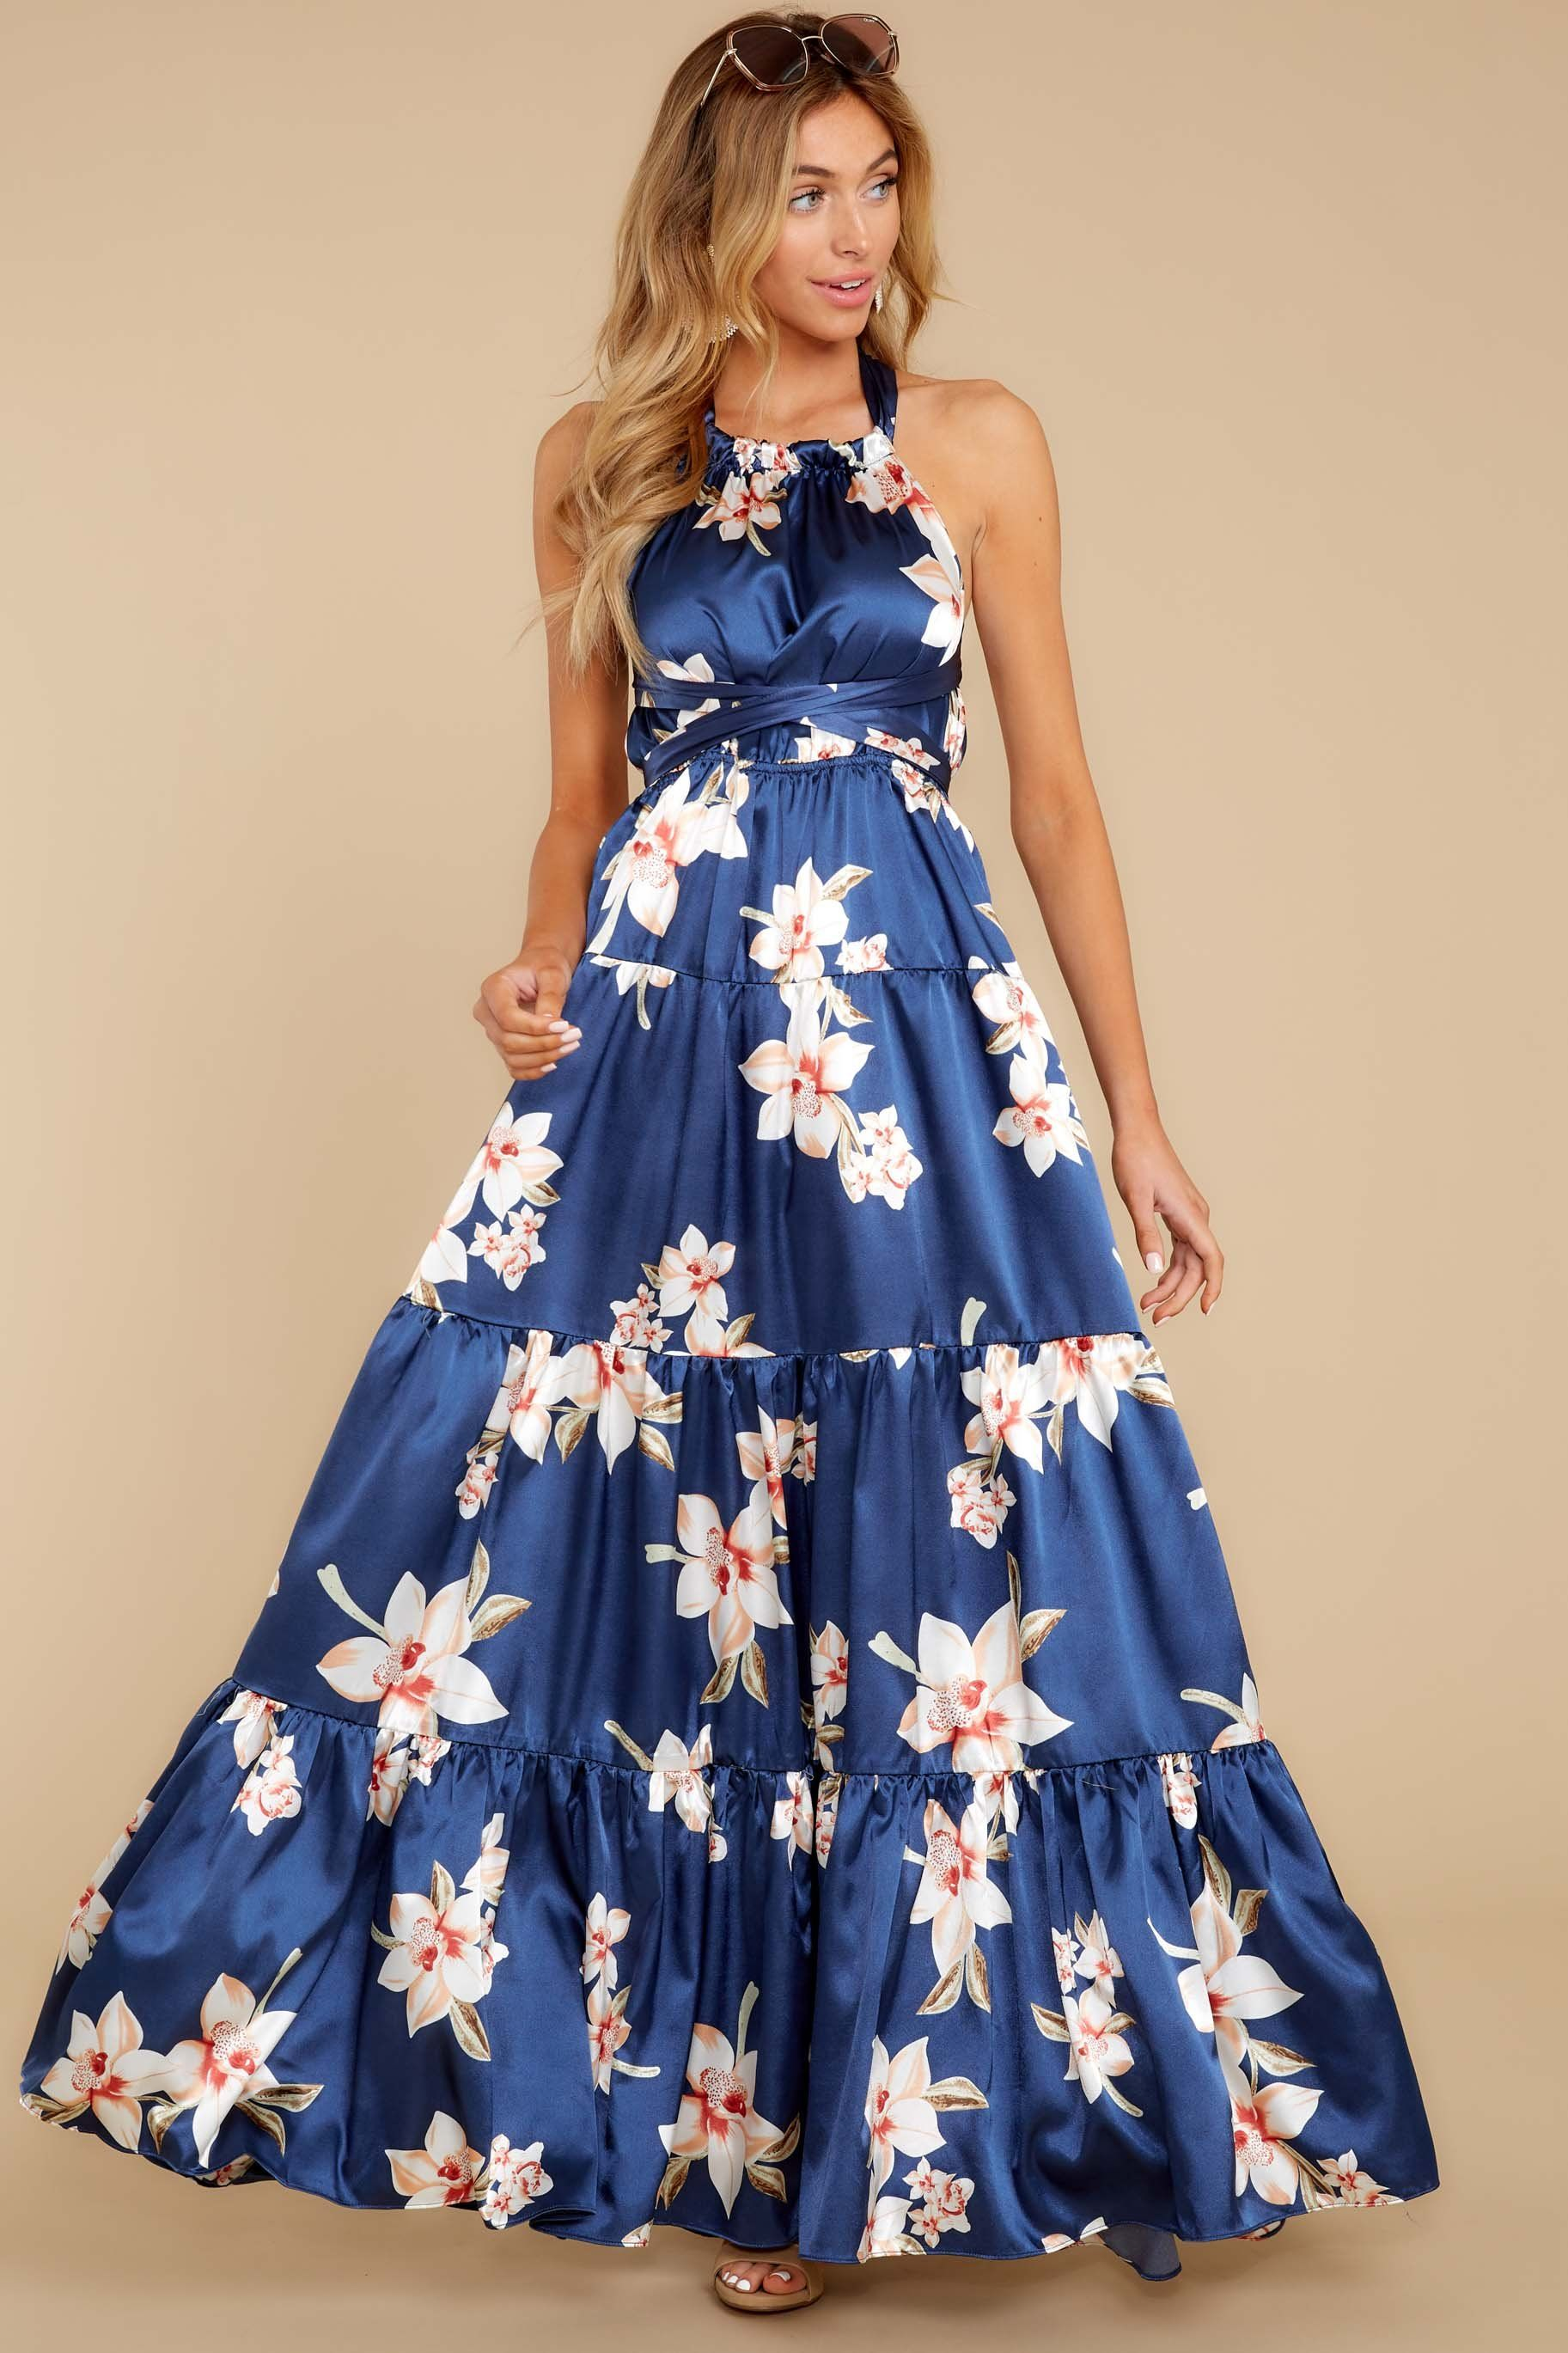 2020 Women Dress Casual Dress Print Short Frock Birthday Party Outfits For Ladies